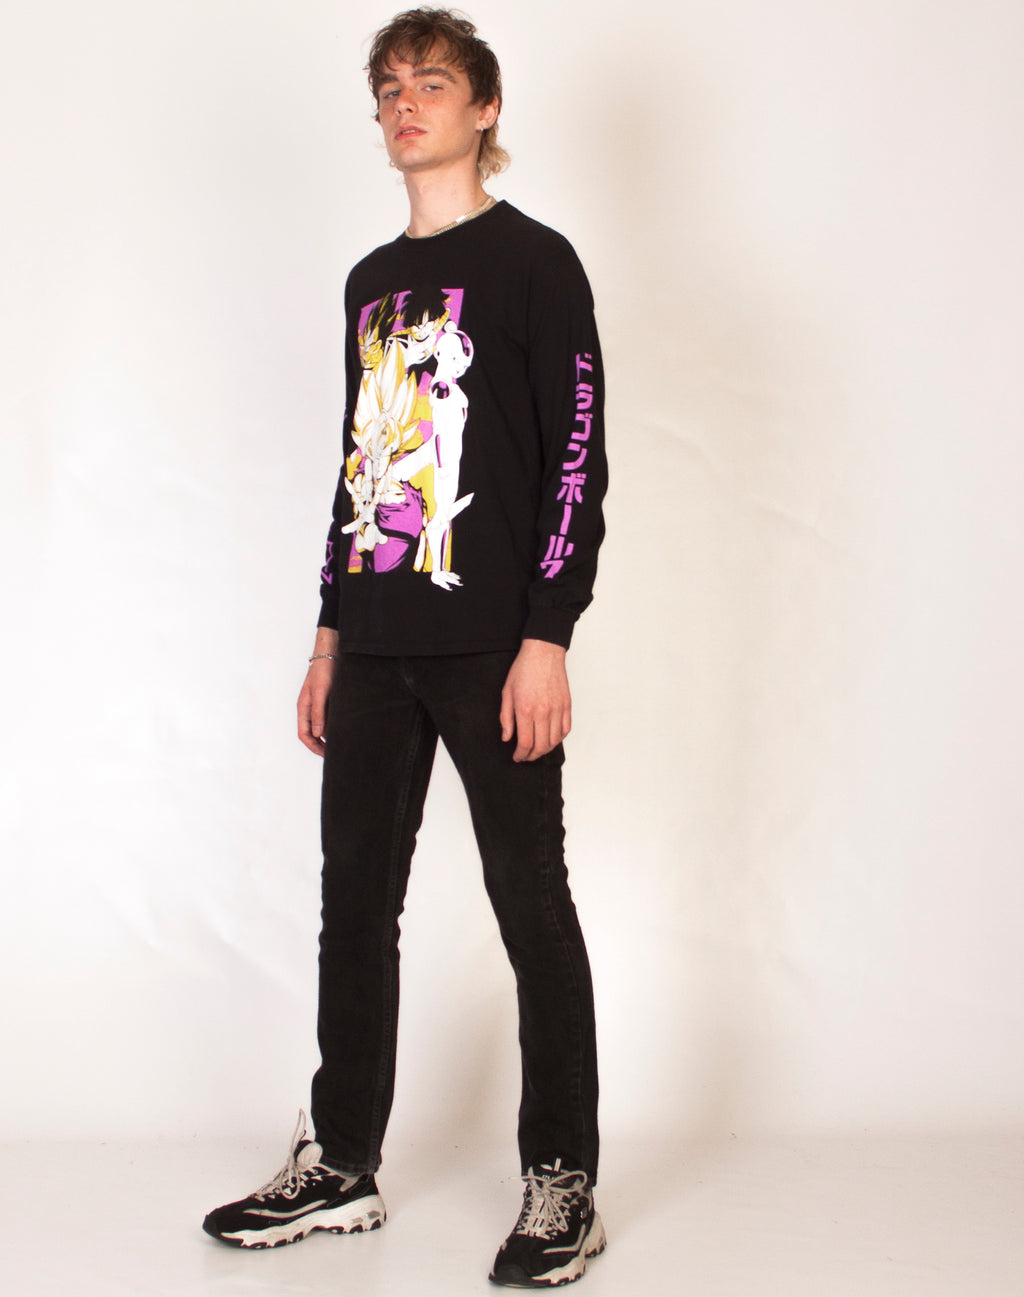 DRAGON BALL Z LONG SLEEVE TEE